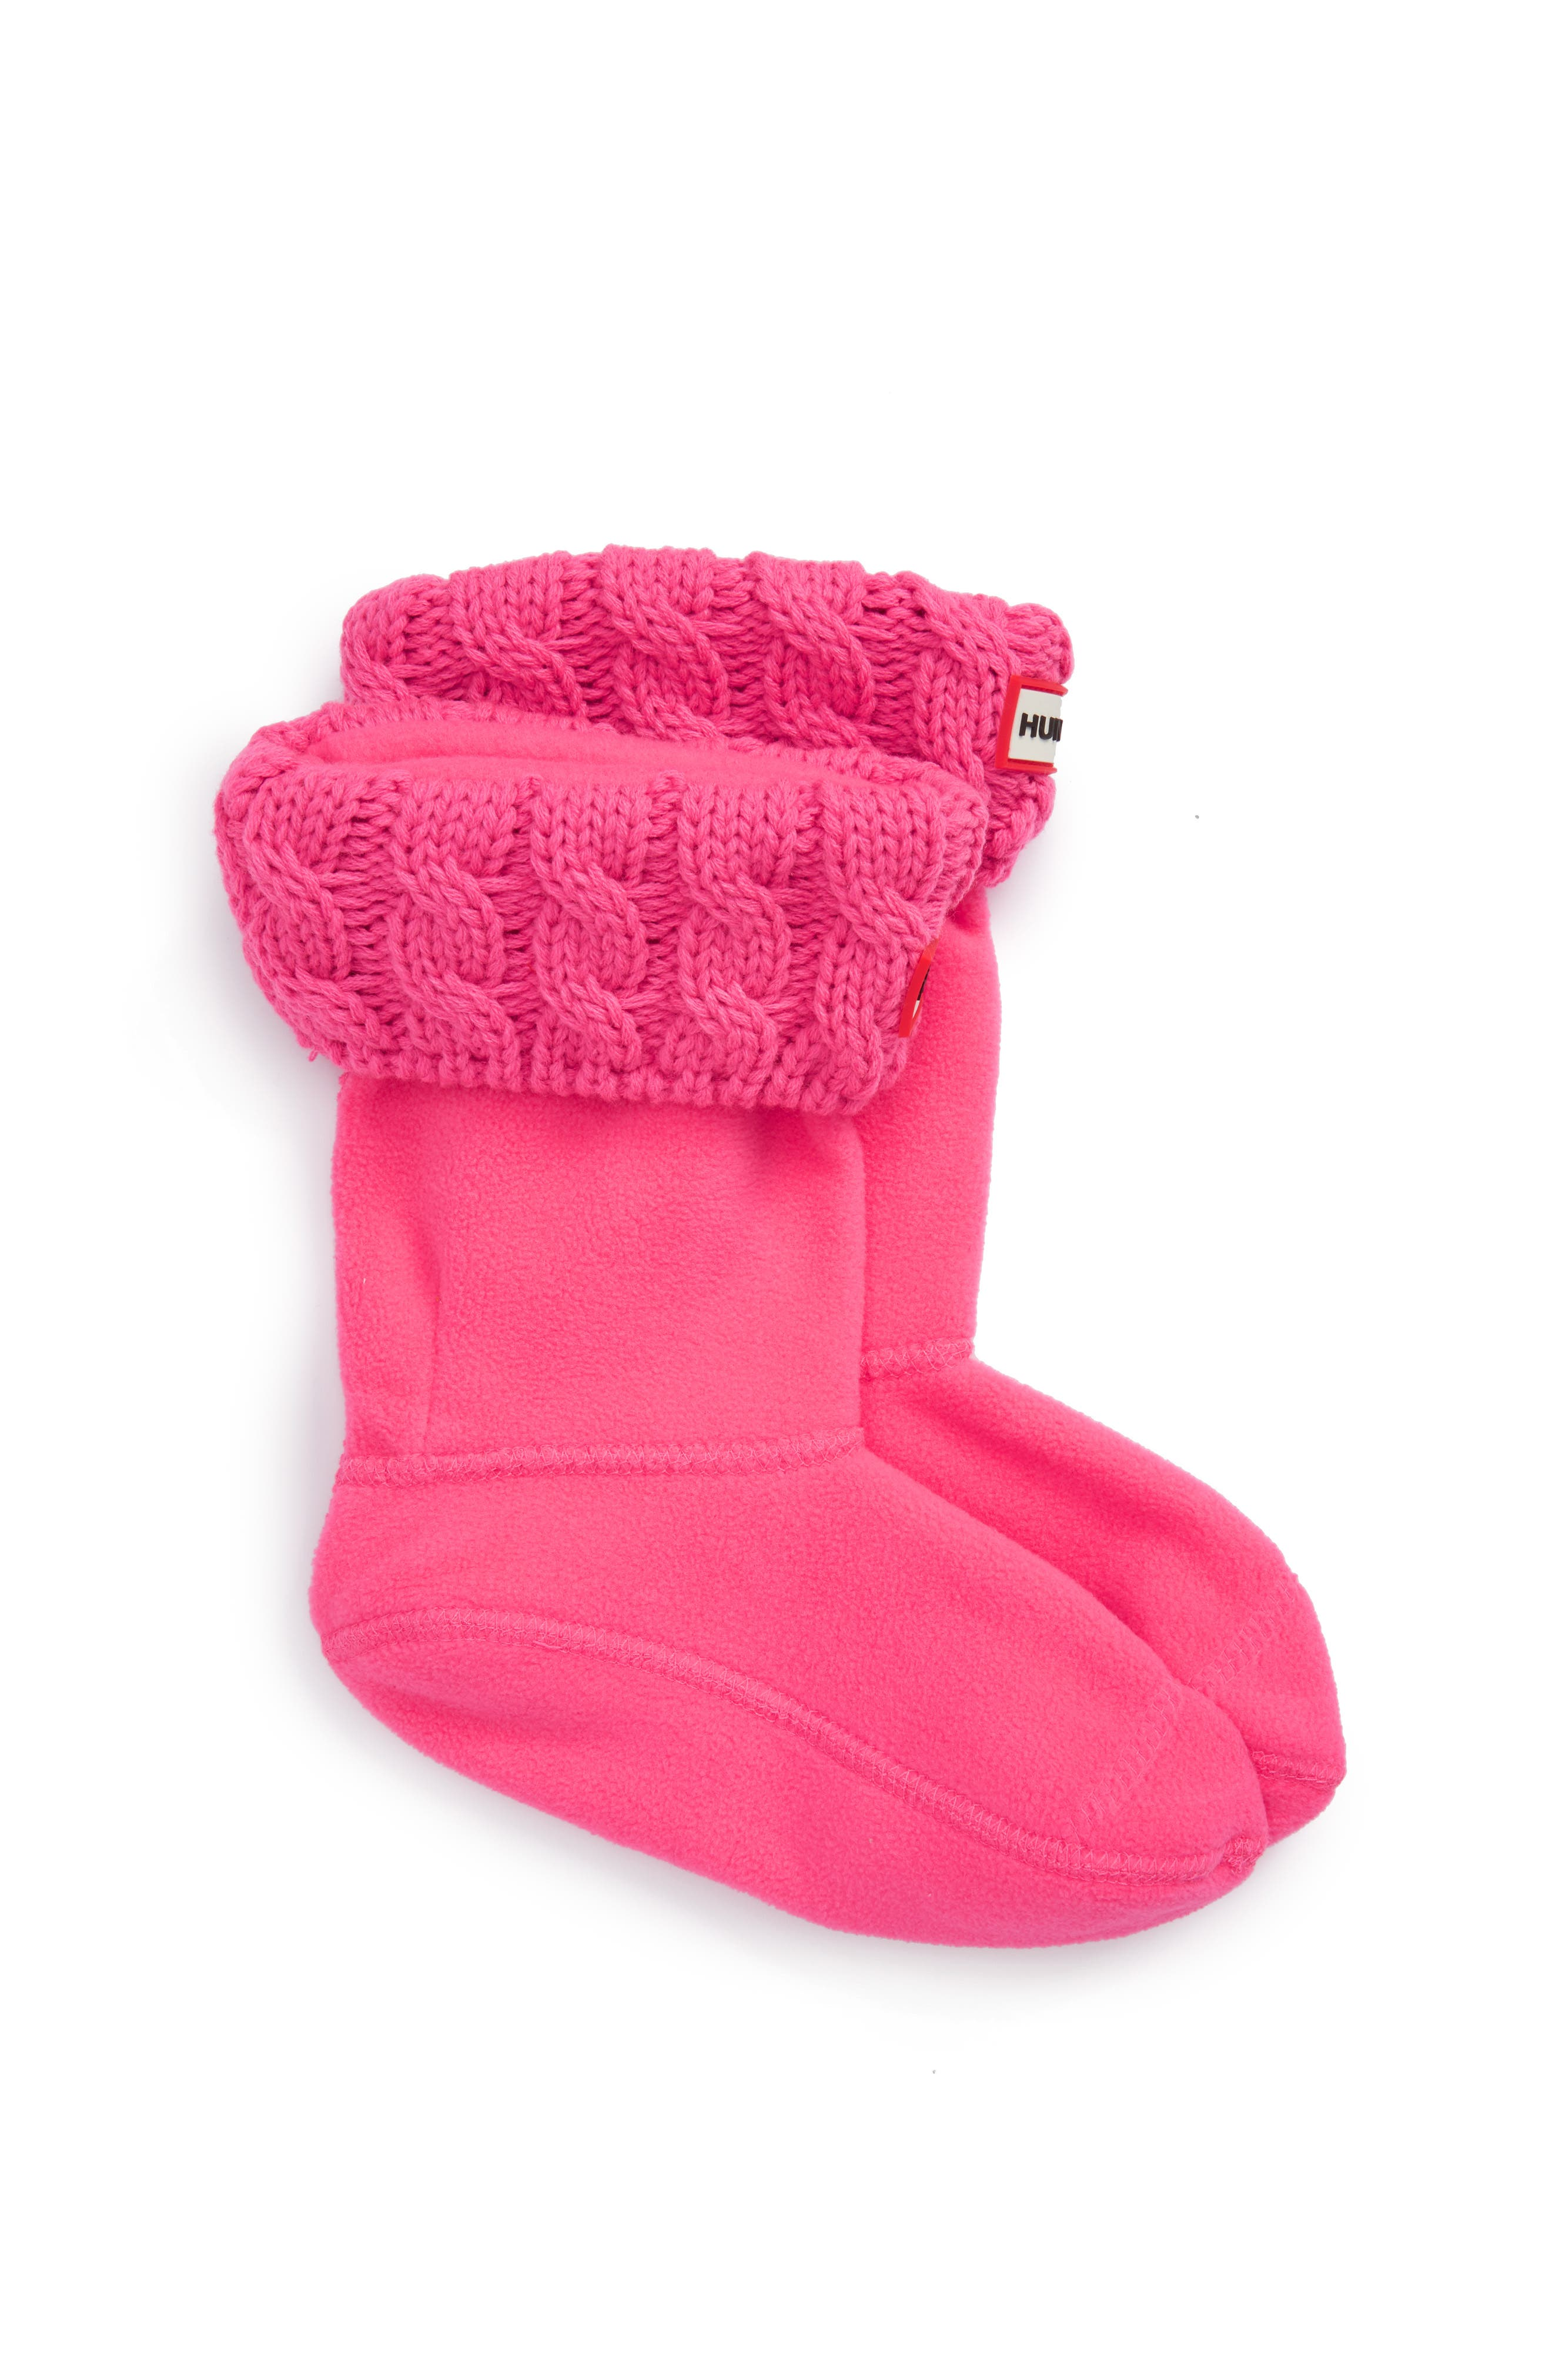 Cable Knit Cuff Welly Boot Socks,                             Main thumbnail 1, color,                             Ion Pink